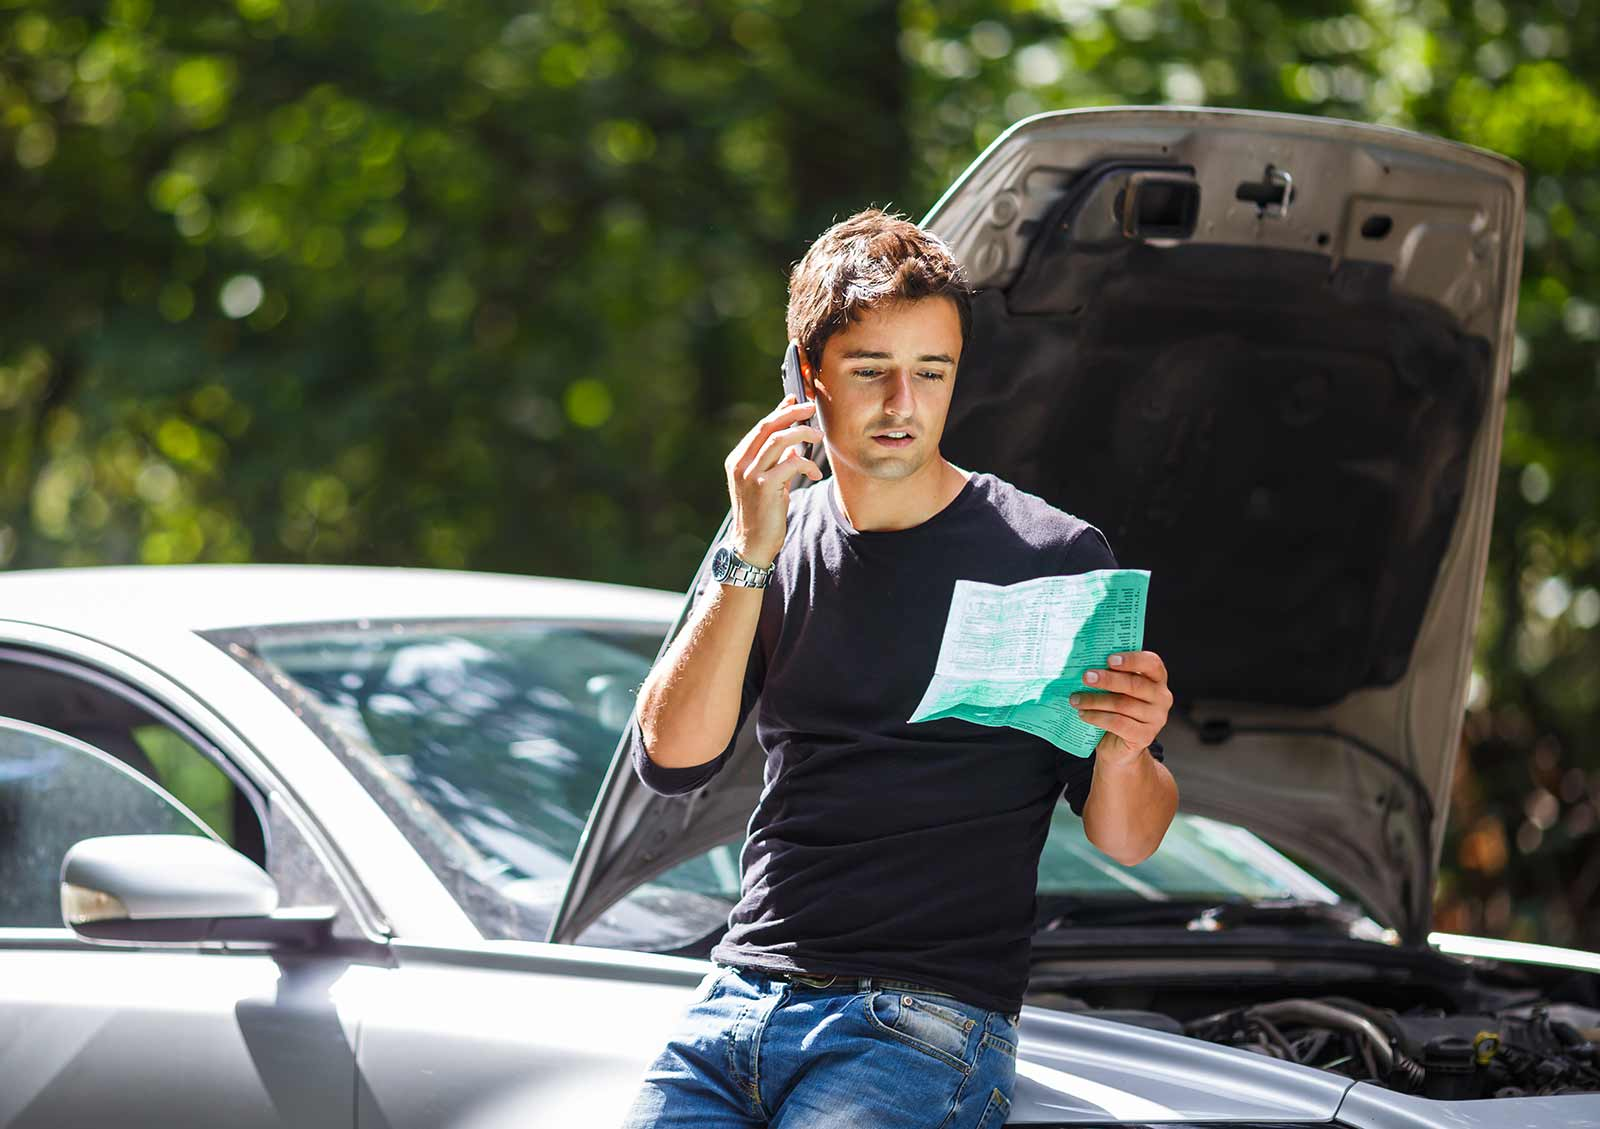 Man reading insurance paper in front of car